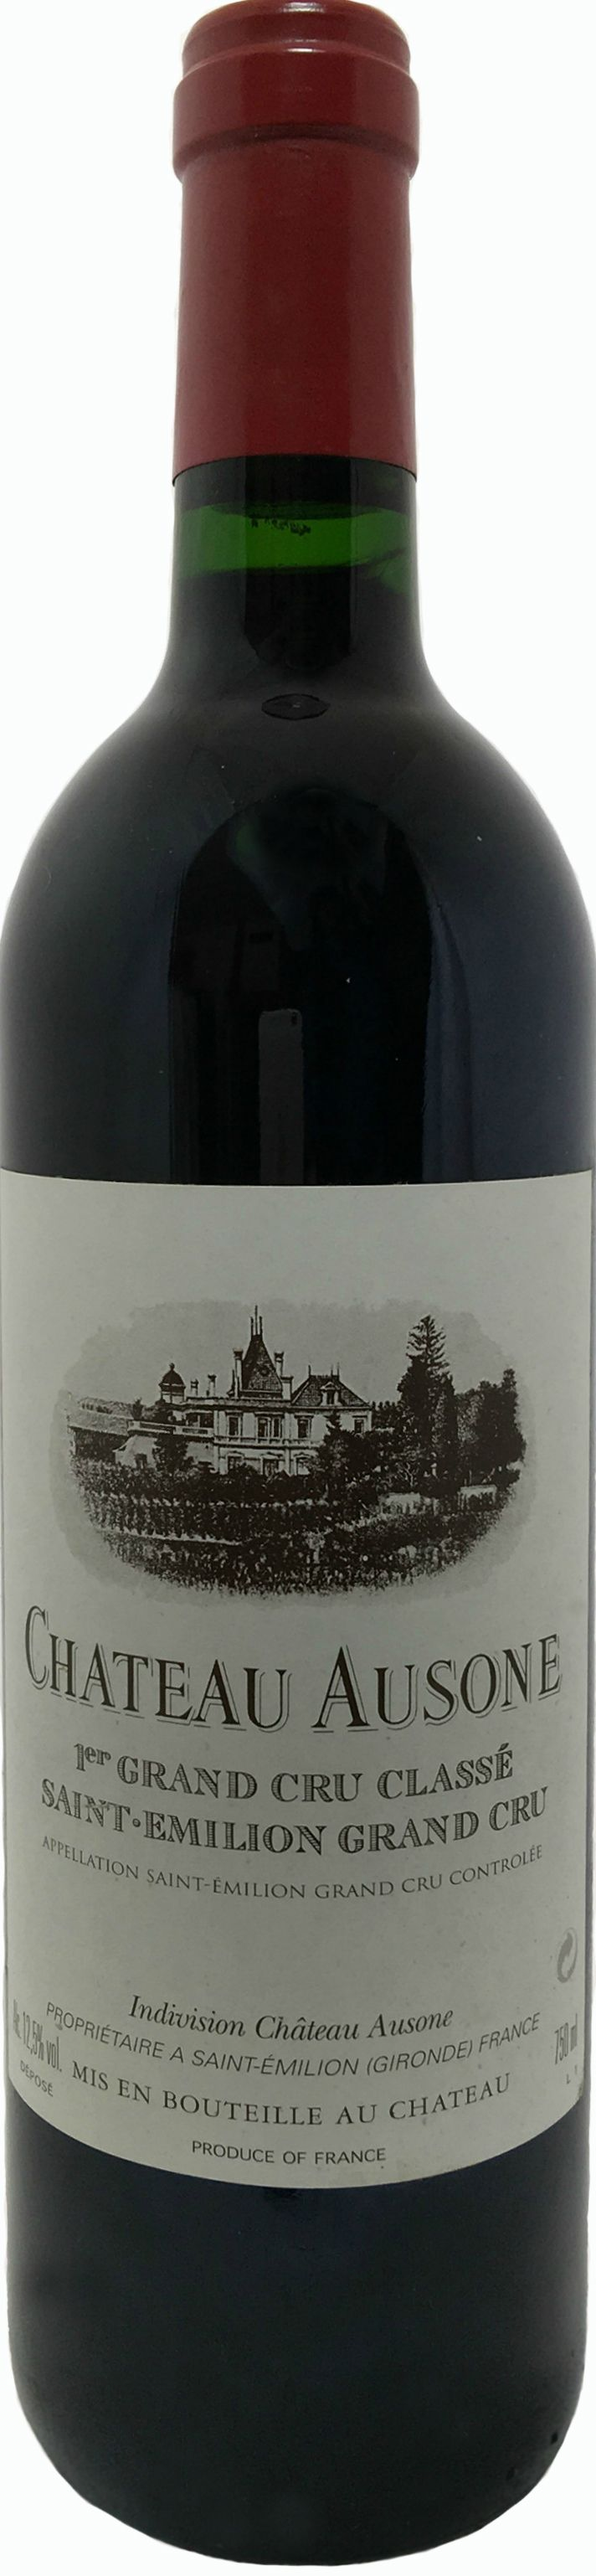 Chateau Ausone, 1er Grand Cru, 2002